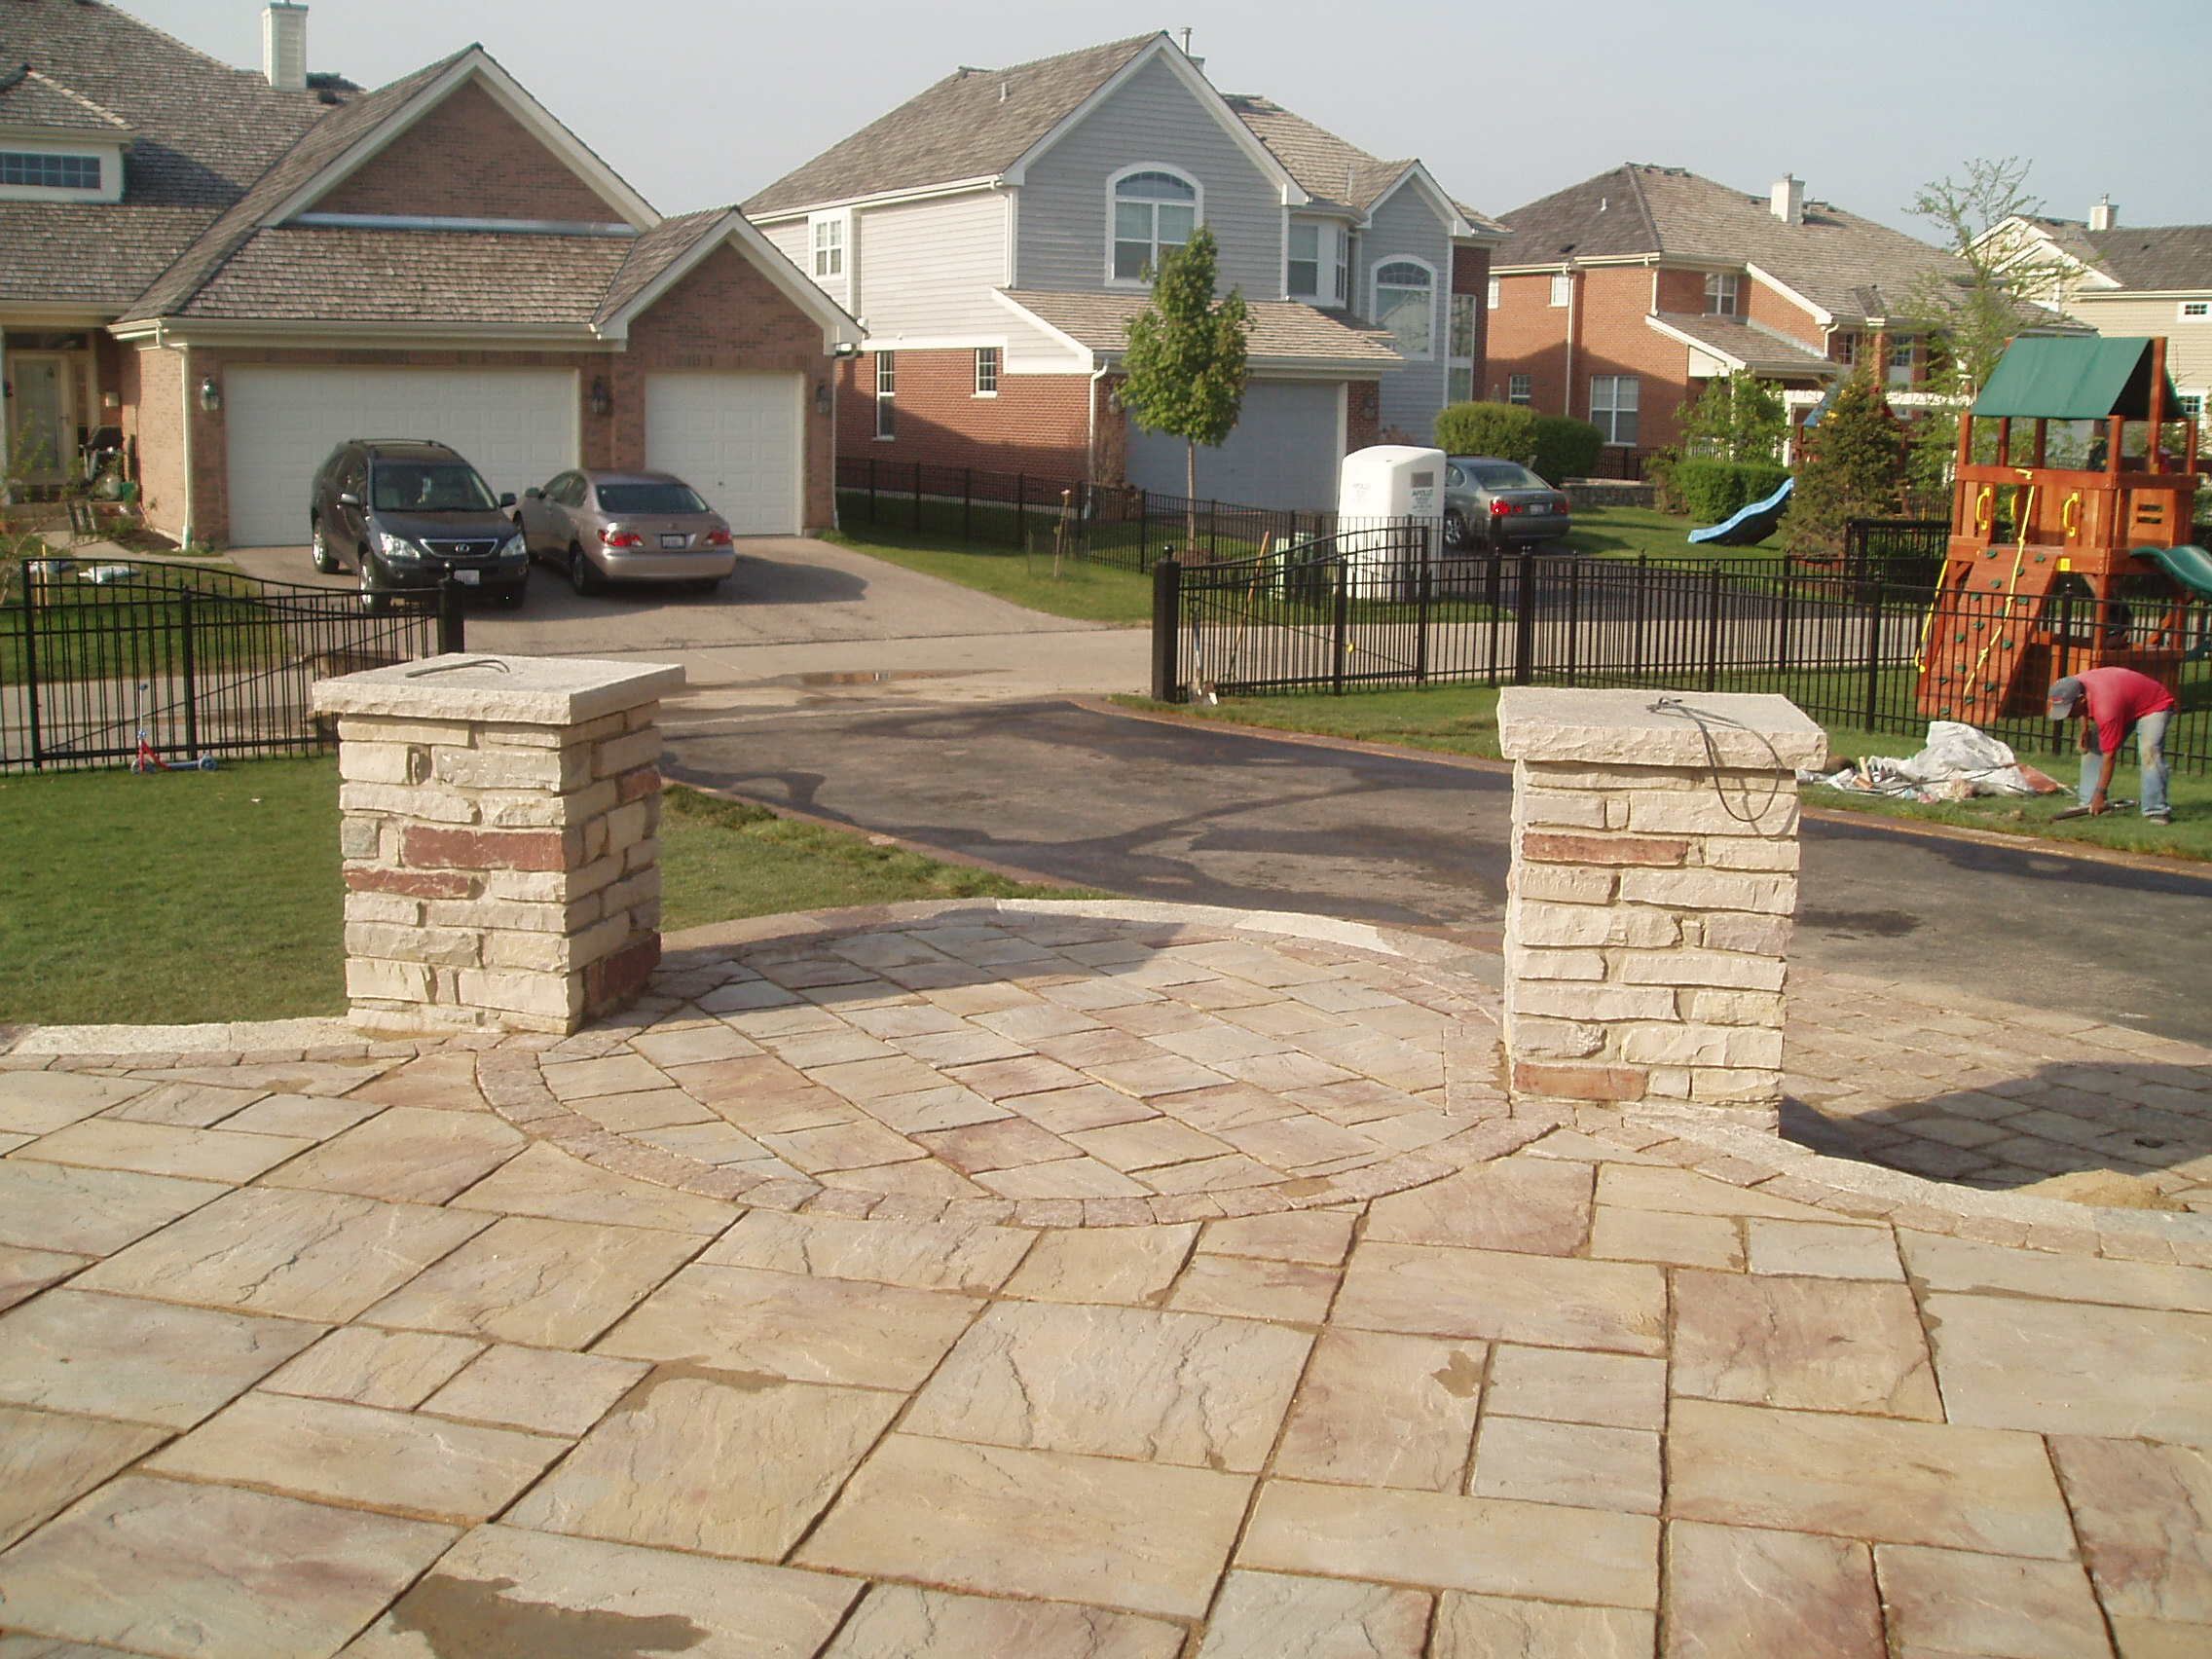 Patio designs by Unilock contractor in Buffalo Grove, IL